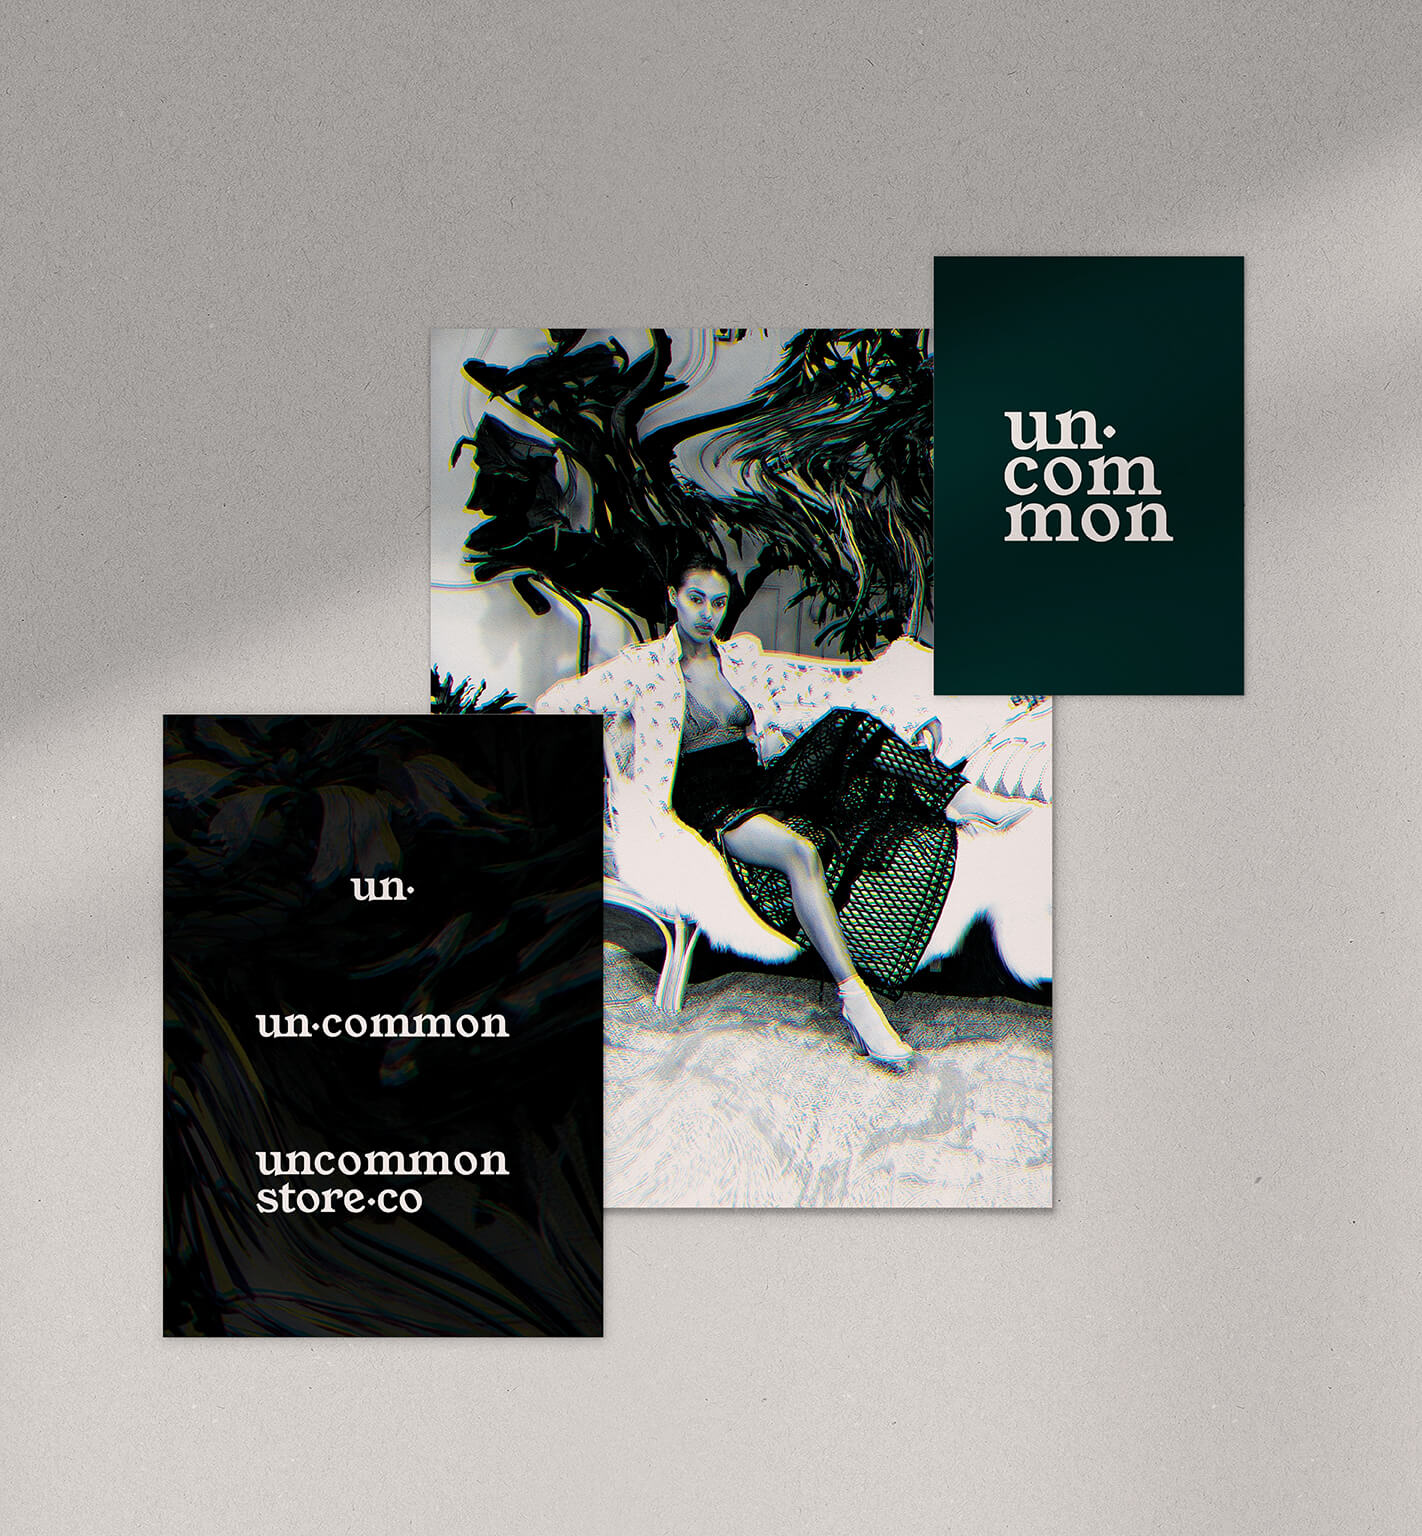 uncommon store brand identity collateral showing supporting glitch graphic and logo suite